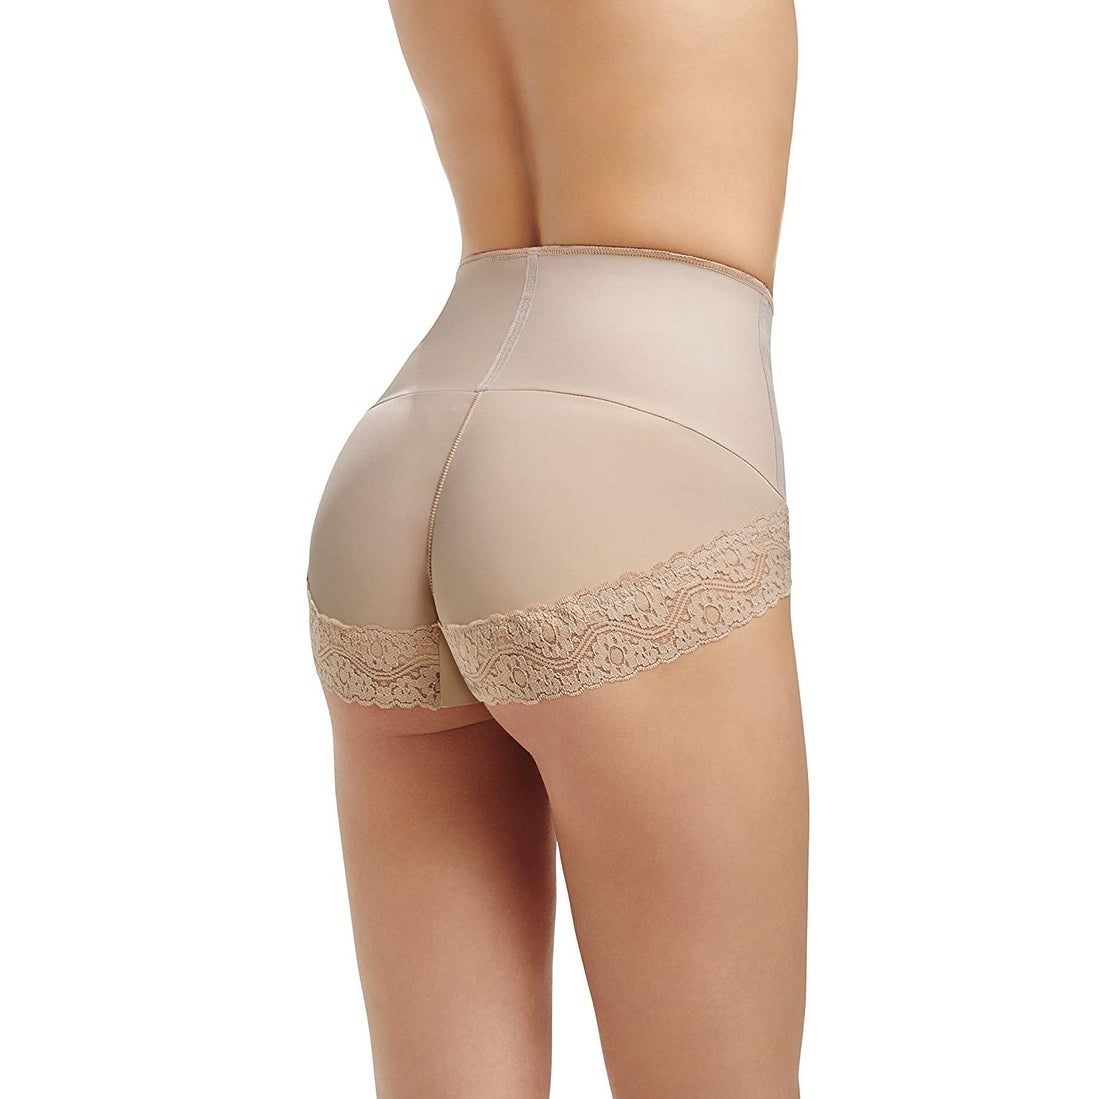 52557e09faa Shop Squeem Nude Beige Womens Size Small S Briefs Mid Waist Shapewear - Free  Shipping On Orders Over  45 - Overstock - 27195055